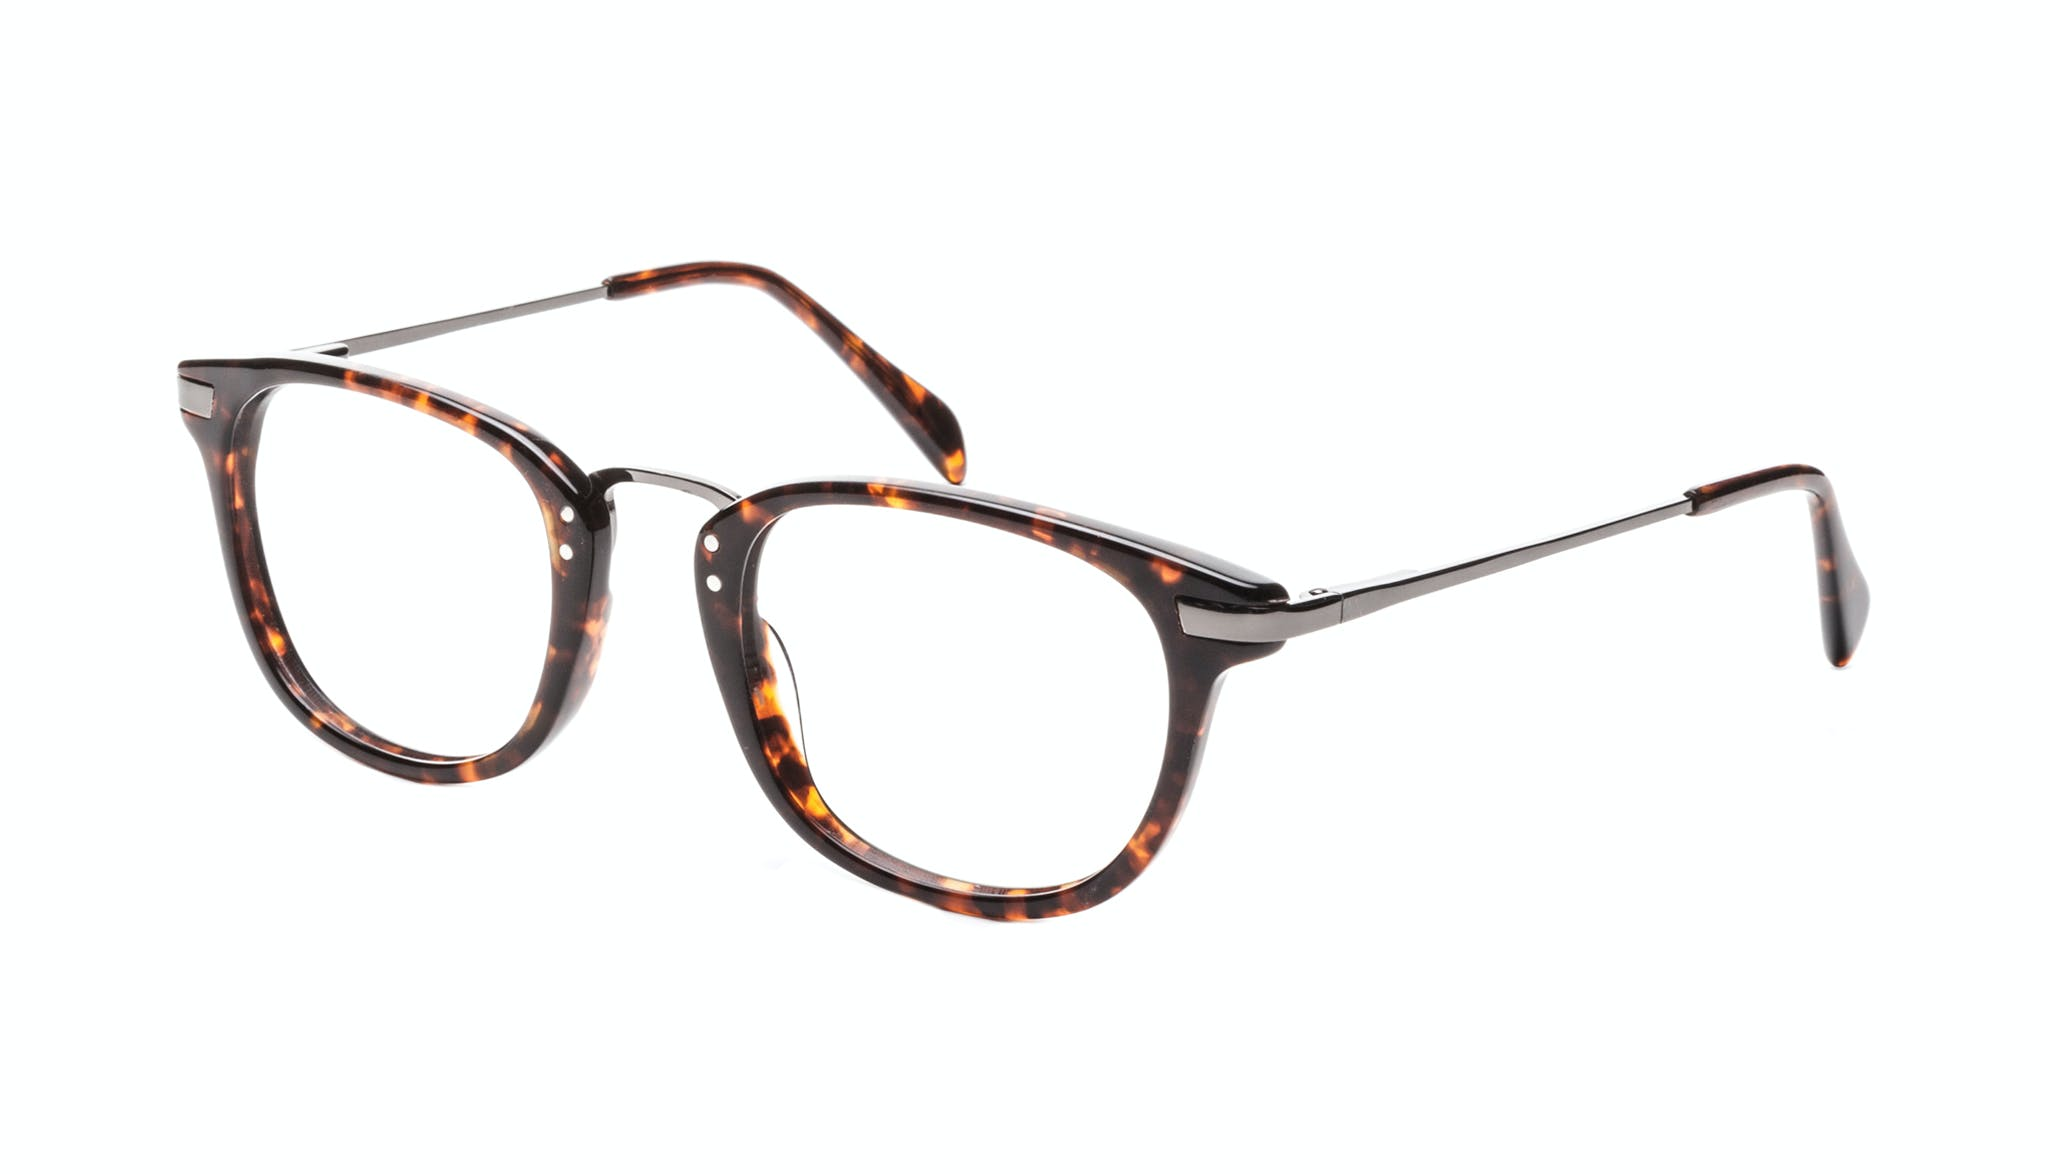 Affordable Fashion Glasses Rectangle Square Eyeglasses Men Daze Sepia Tilt